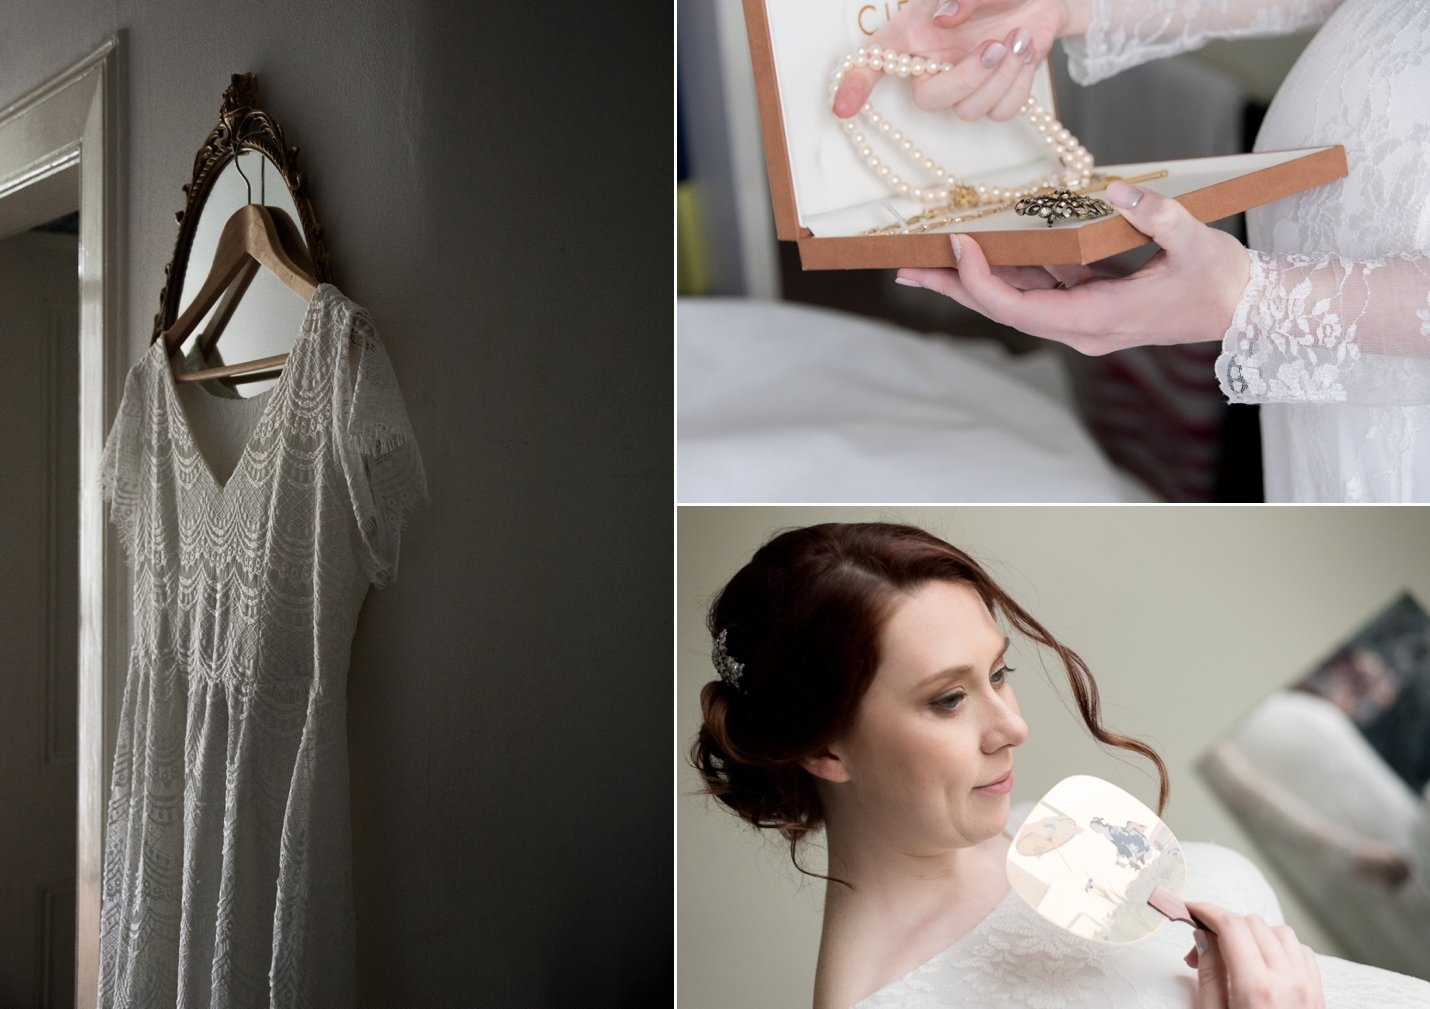 Festival frolics and a wedding for three | We Fell In Love ...